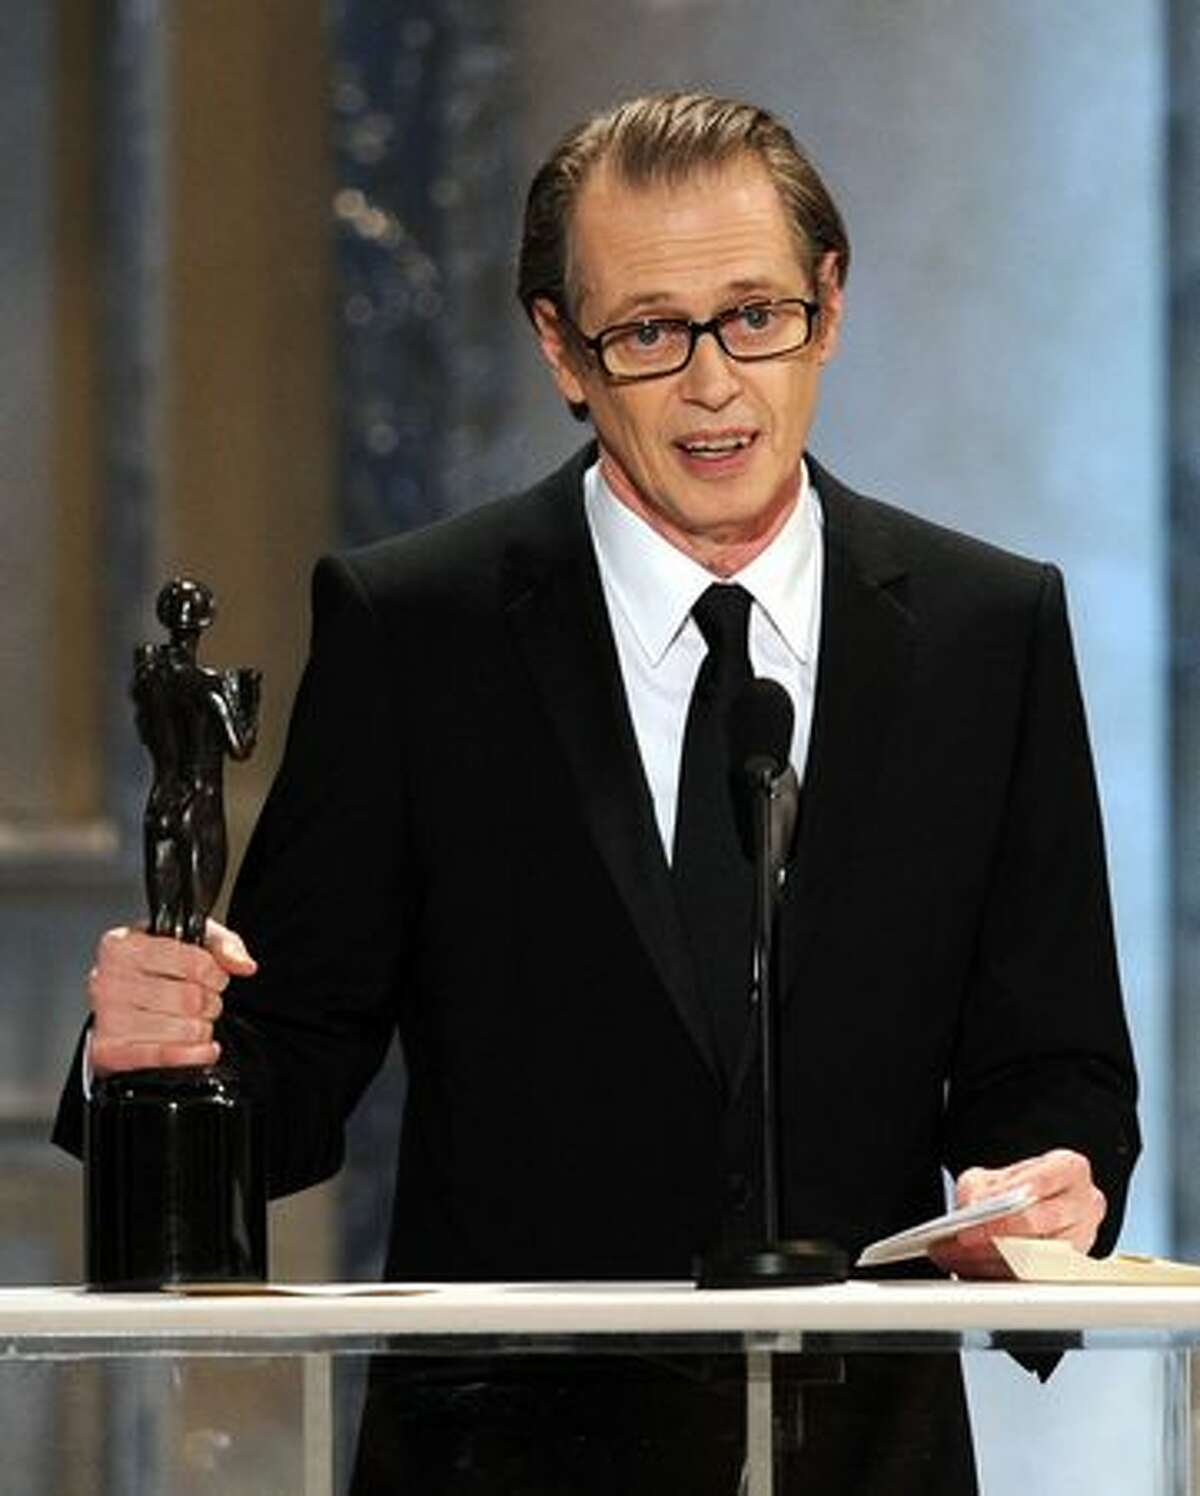 Actor Steve Buscemi, winner of Outstanding Performance by a Male Actor in a Drama Series award for